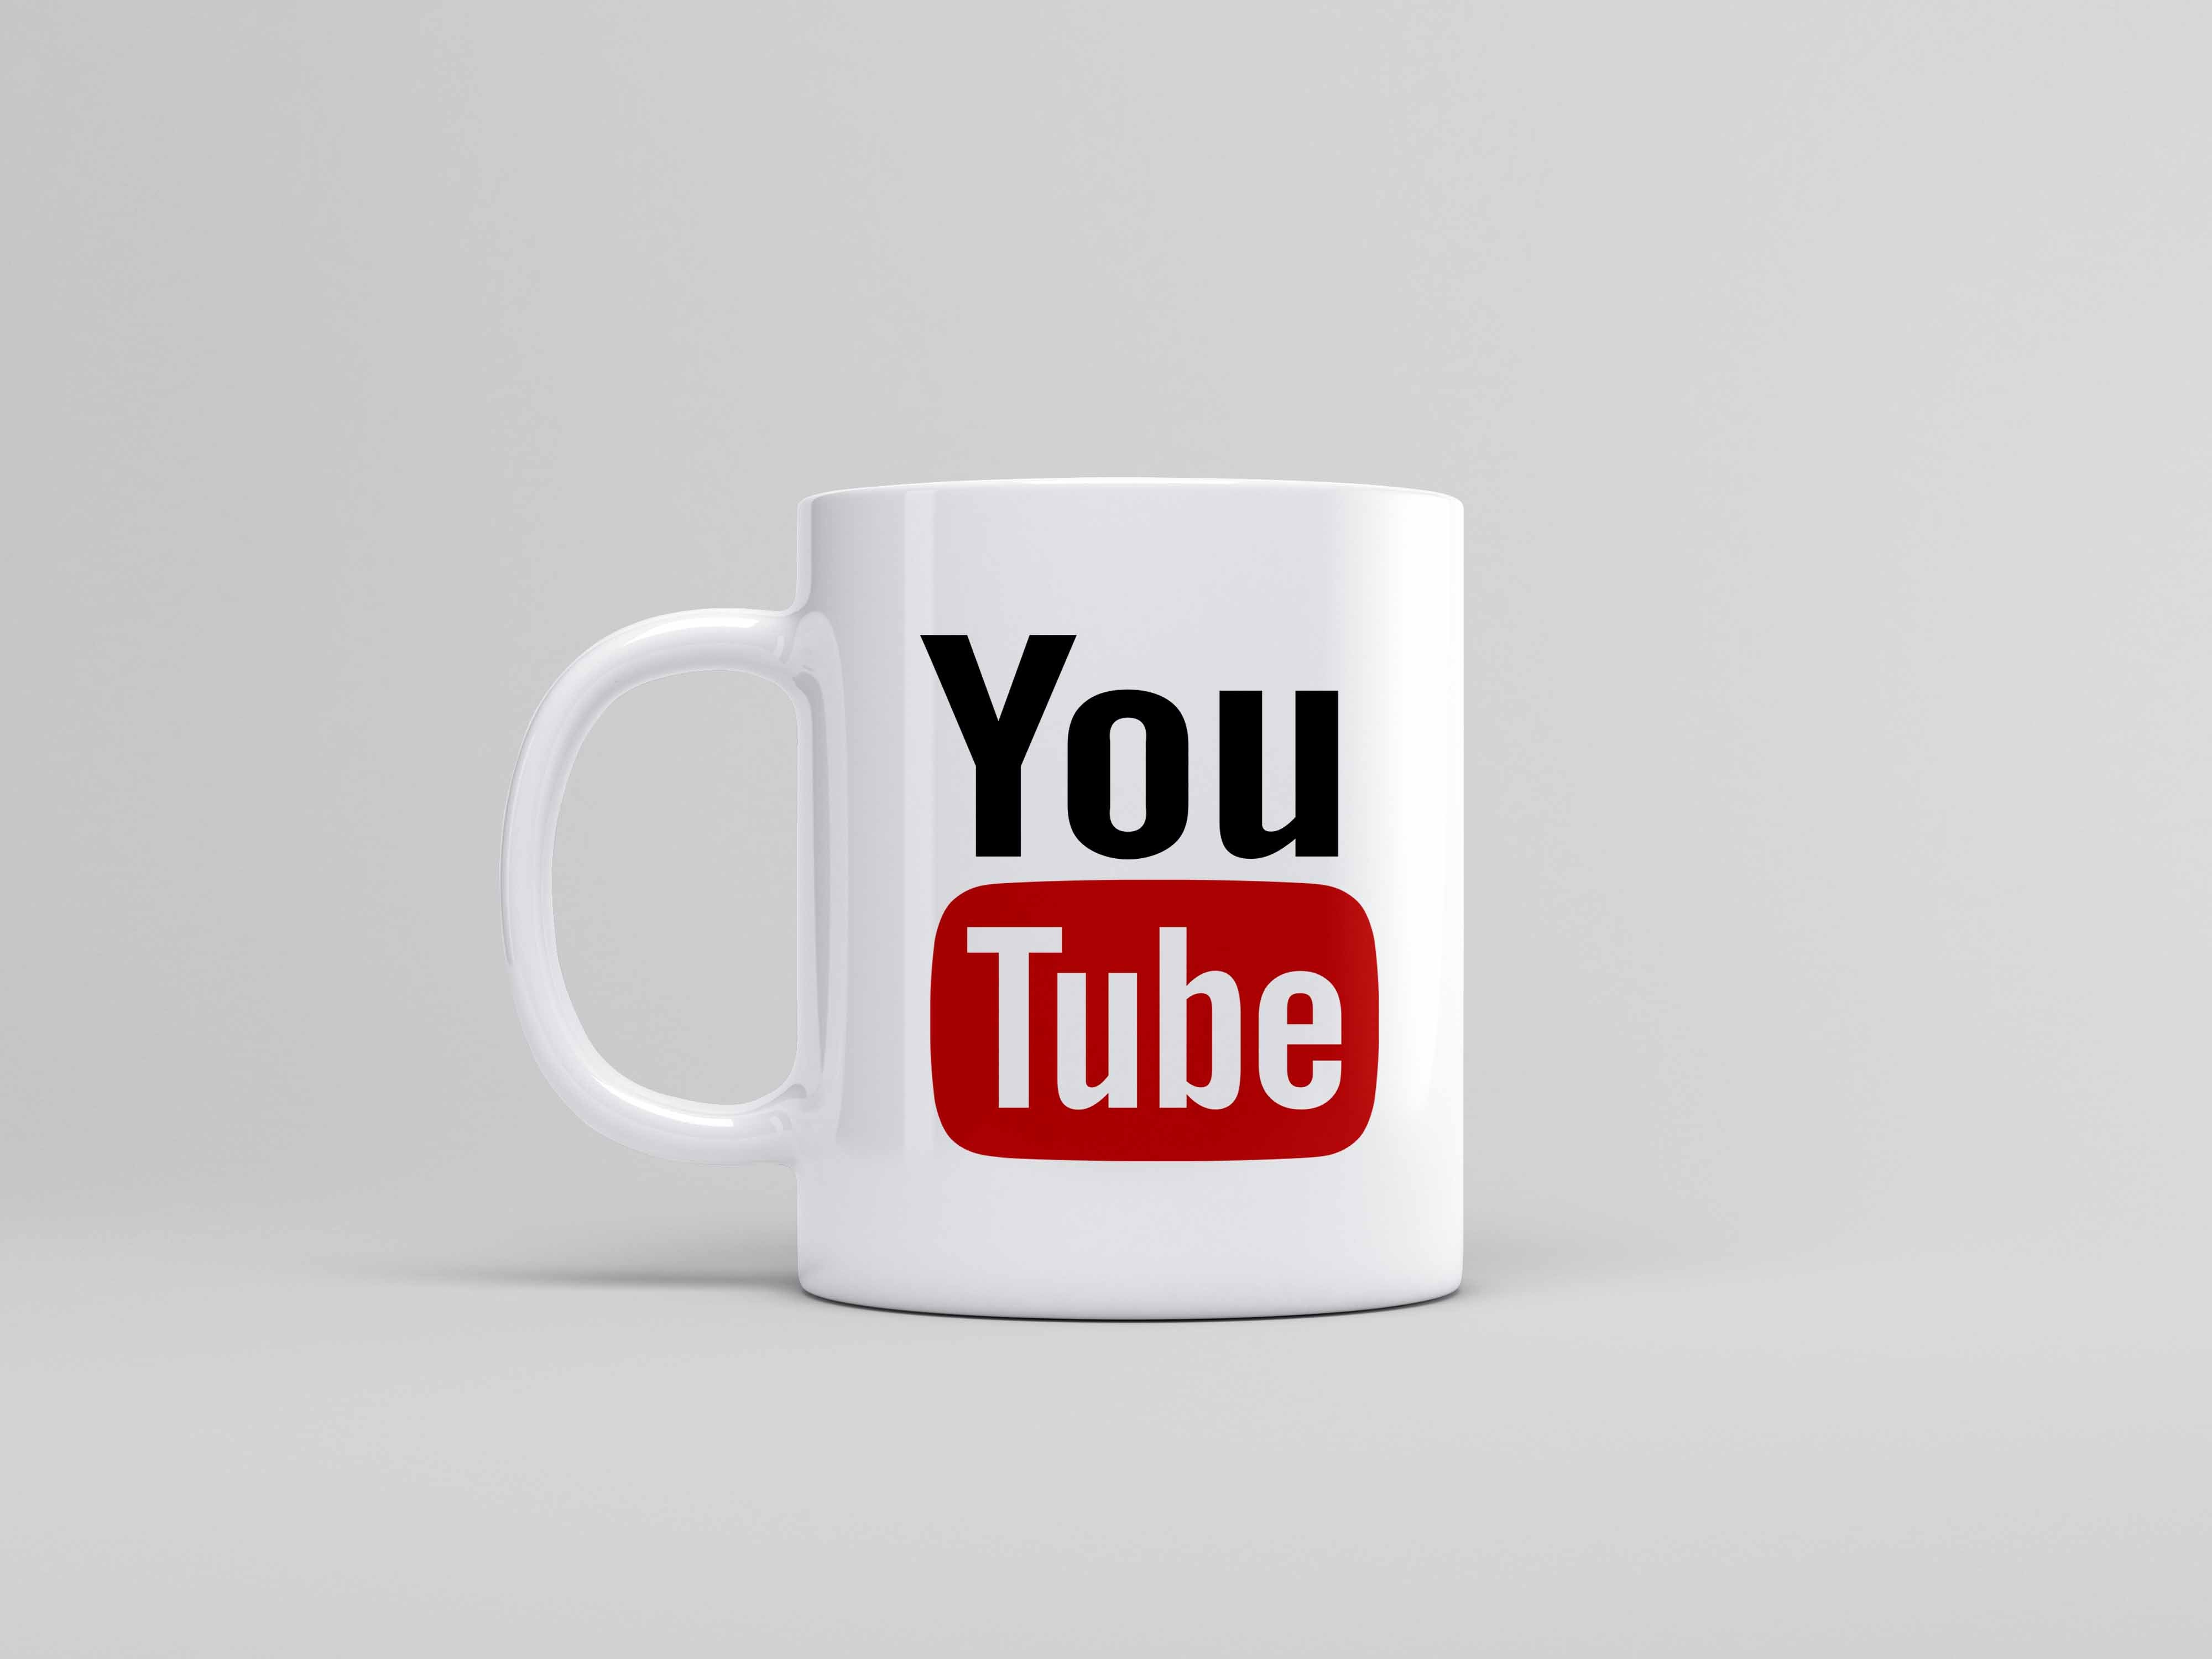 Youtube Mug - For Youtubers